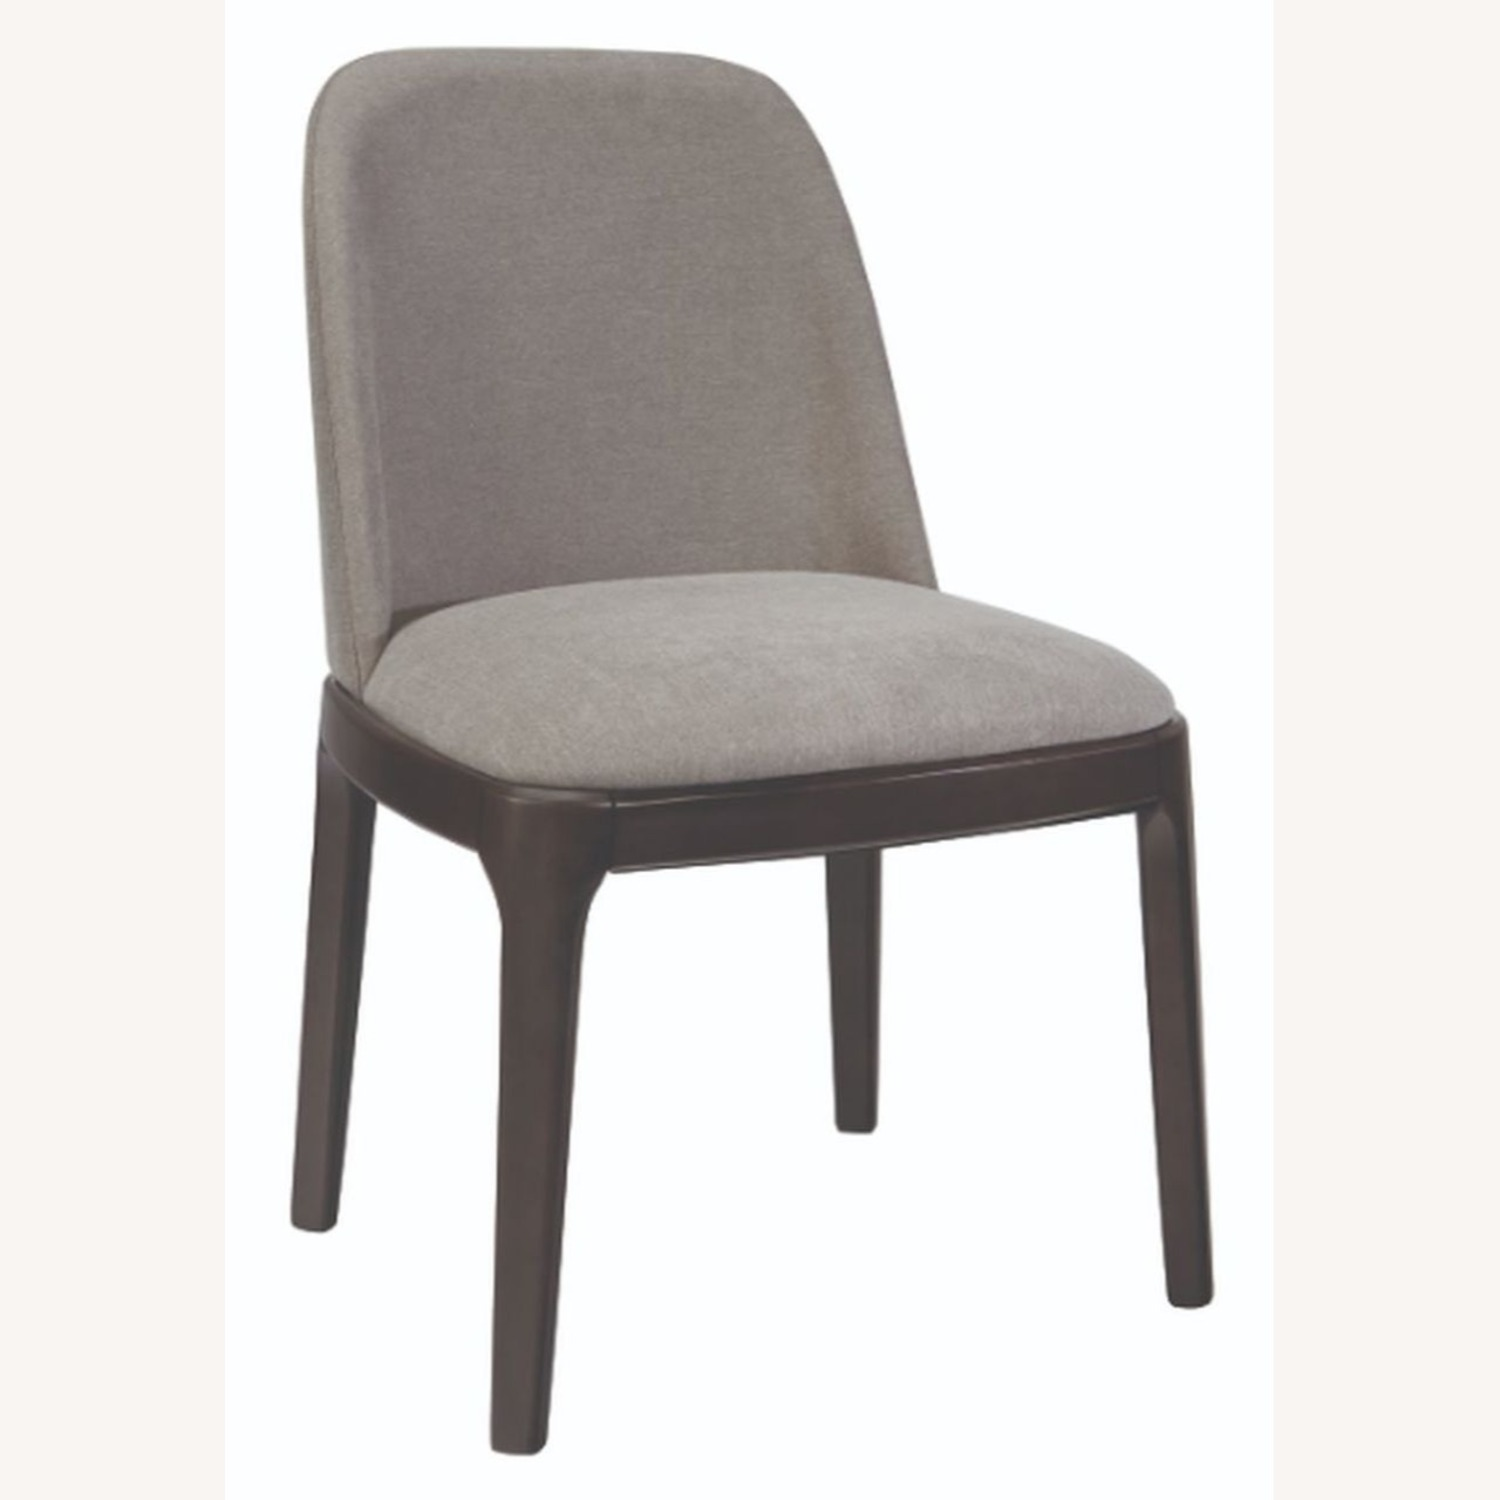 Contemporary Side Chair Upholstered In Grey Fabric - image-0